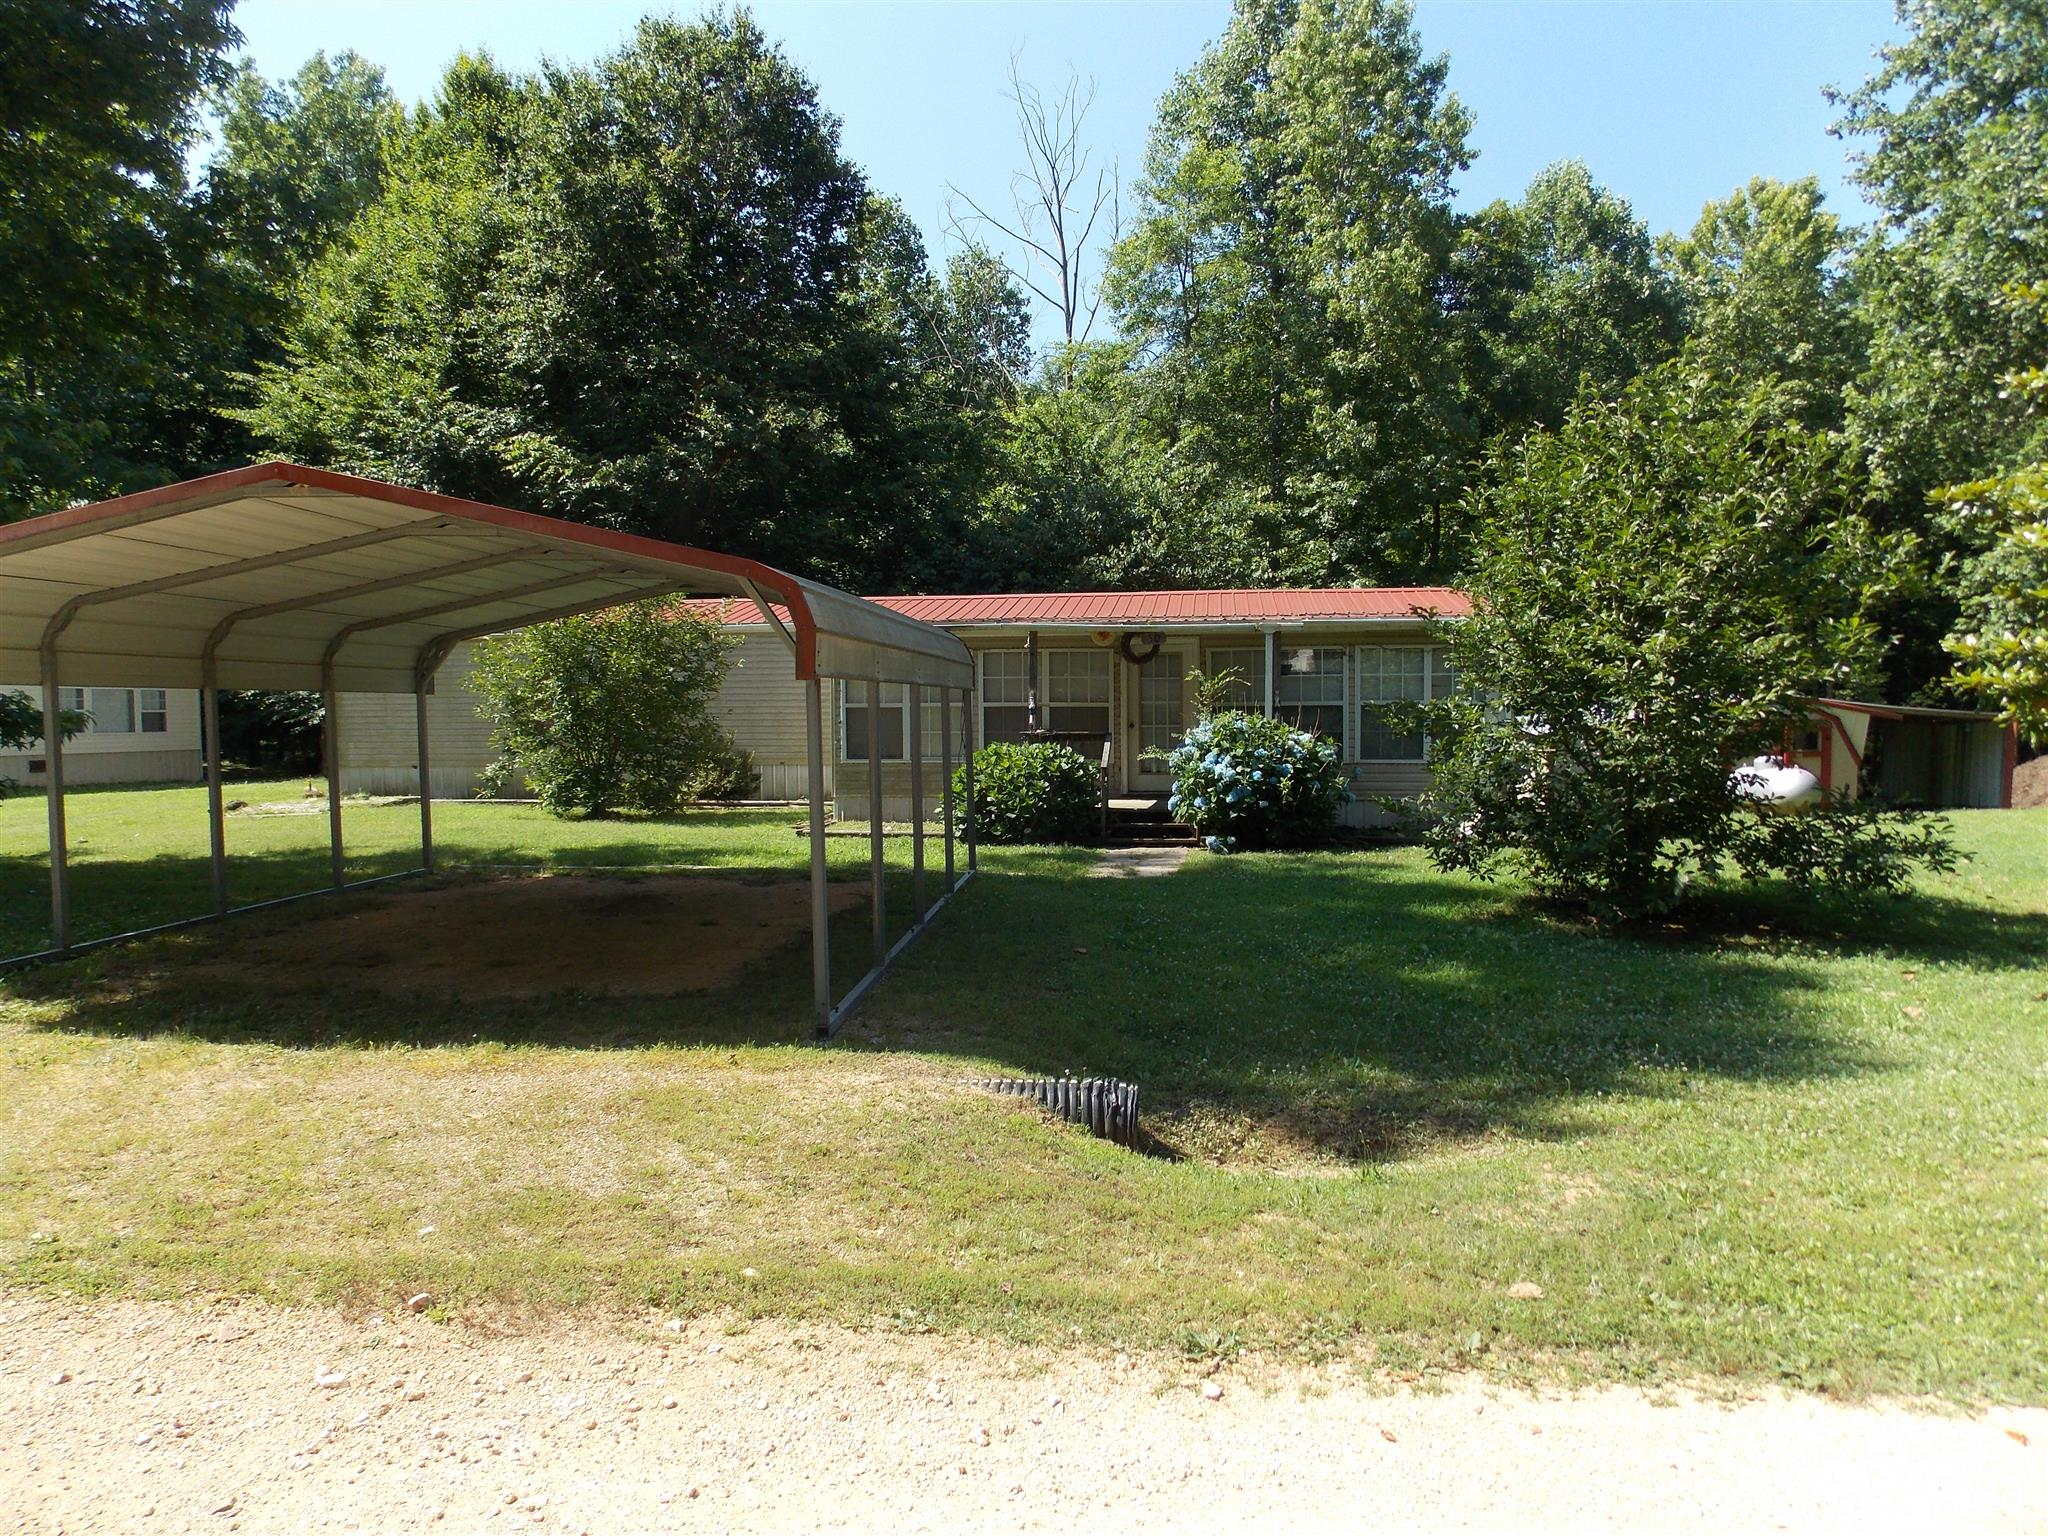 Photo of 50 Cresent Ridge Rd  Lobelville  TN